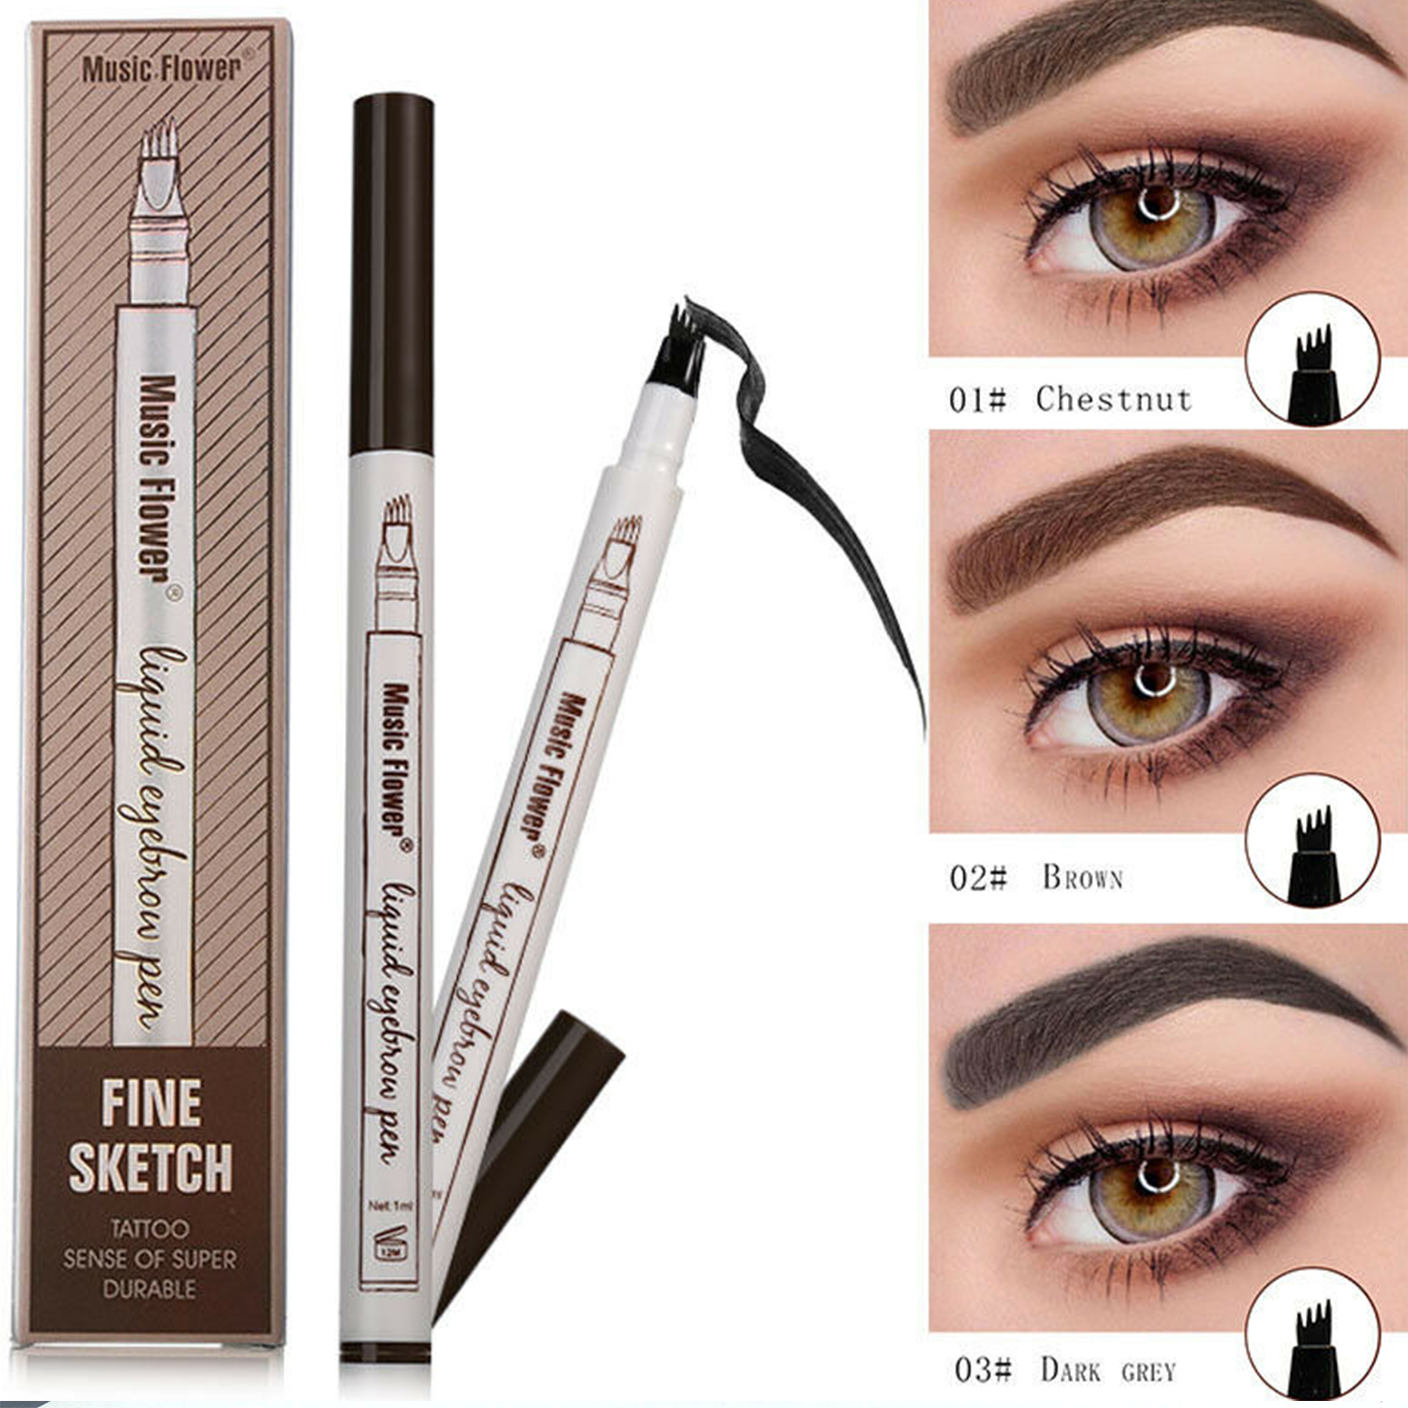 Fine Sketch Eyebrow Pencil Perfect